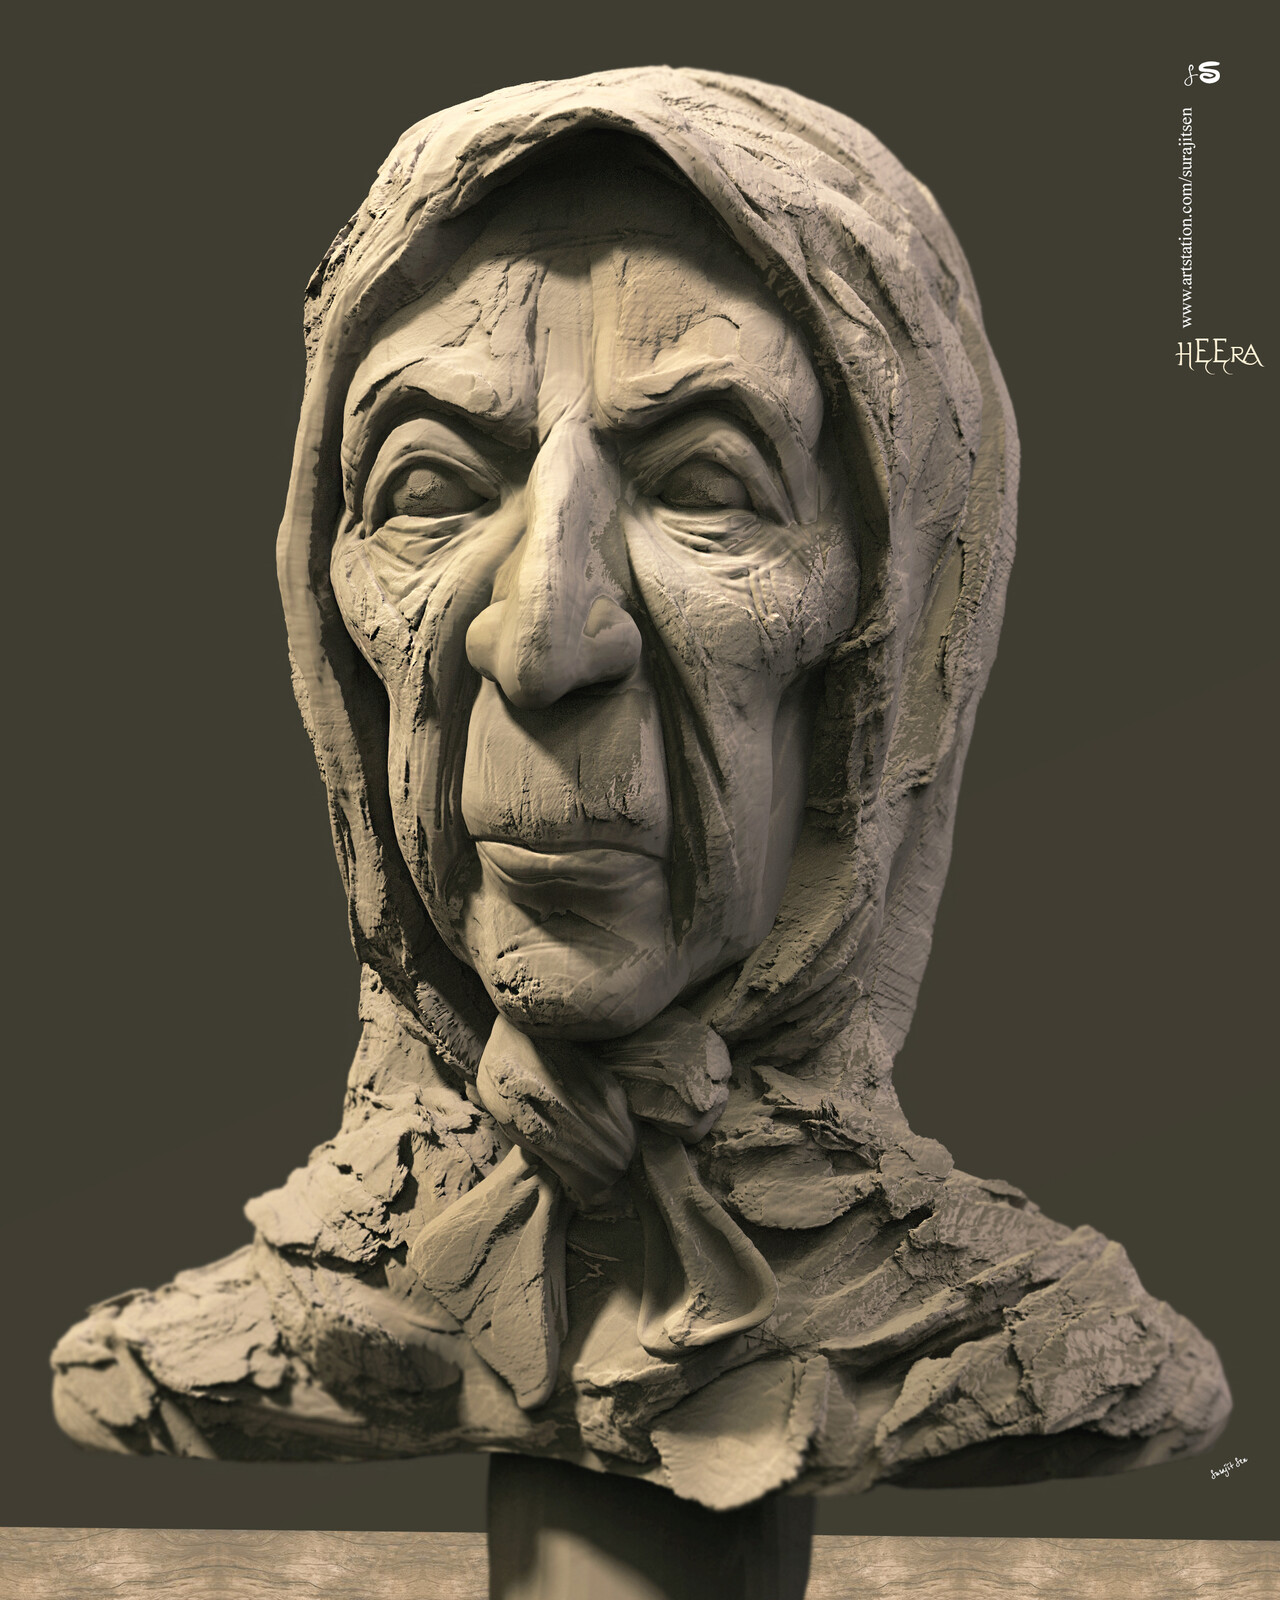 HEERA Digital Sculpture. My free time quick Sculpting... Background music- #hanszimmermusic